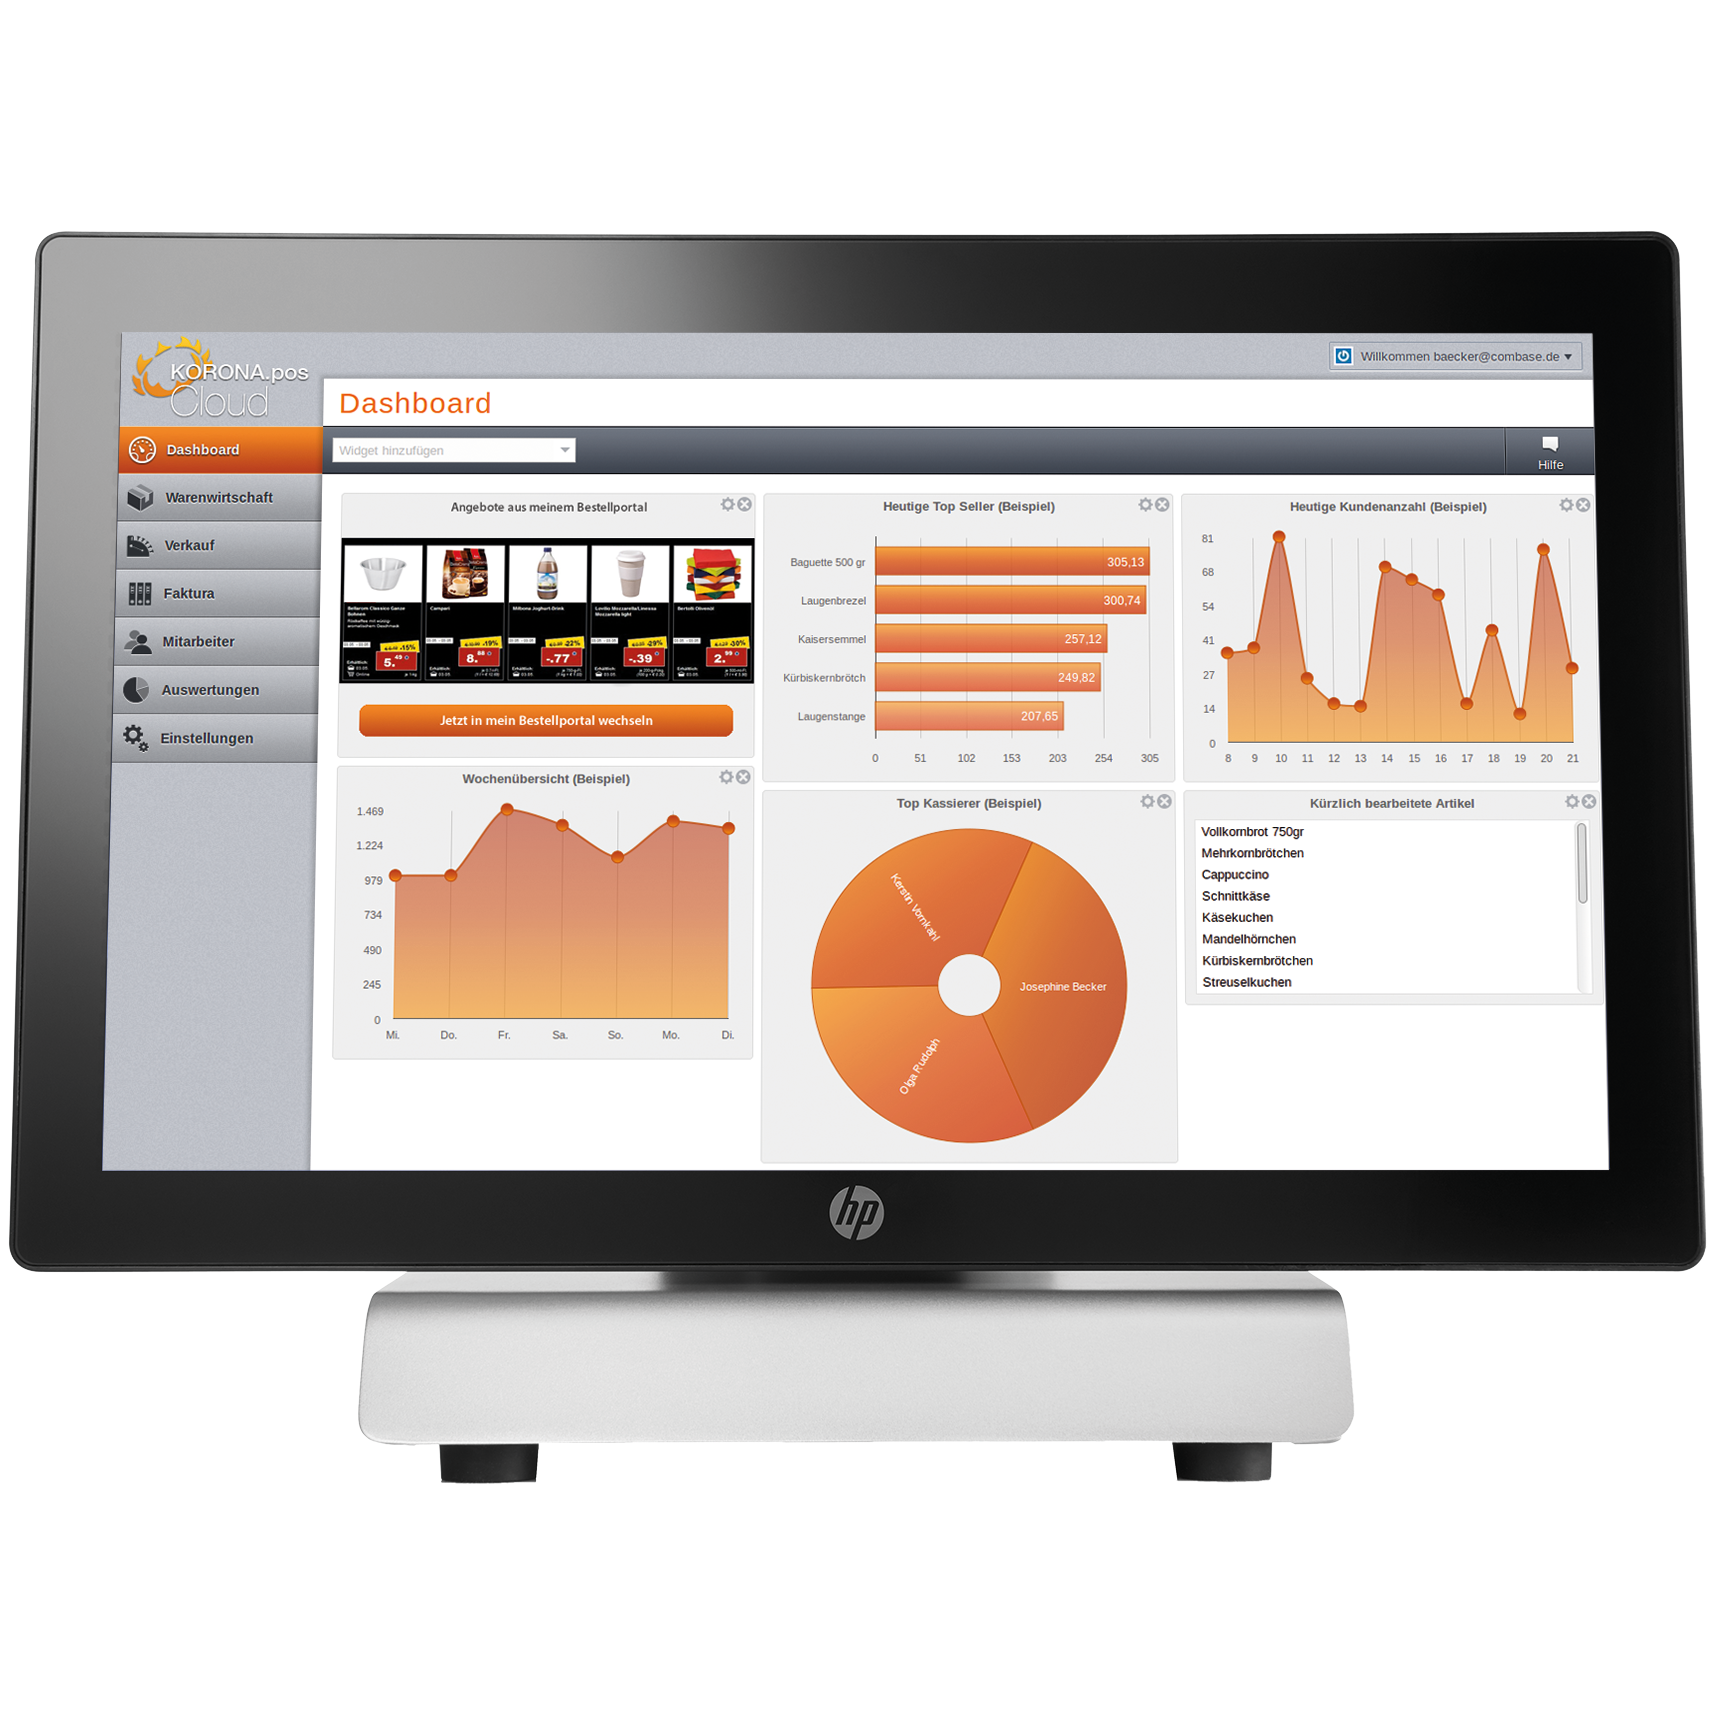 KORONA's backend database features detailed sales reports, product analysis, KPIs, inventory management, and other metrics. Everything is calculated automatically with graphs and charts to help break down the data.